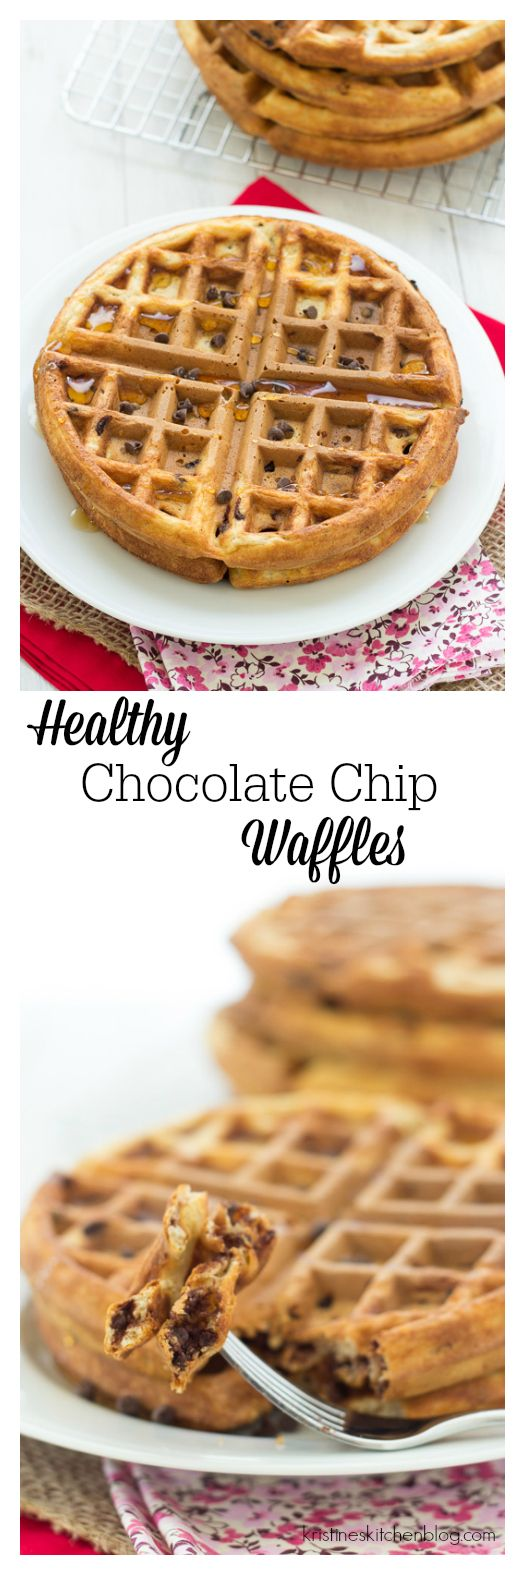 Freezer-friendly healthy chocolate chip waffles will lure you out of bed in the morning!